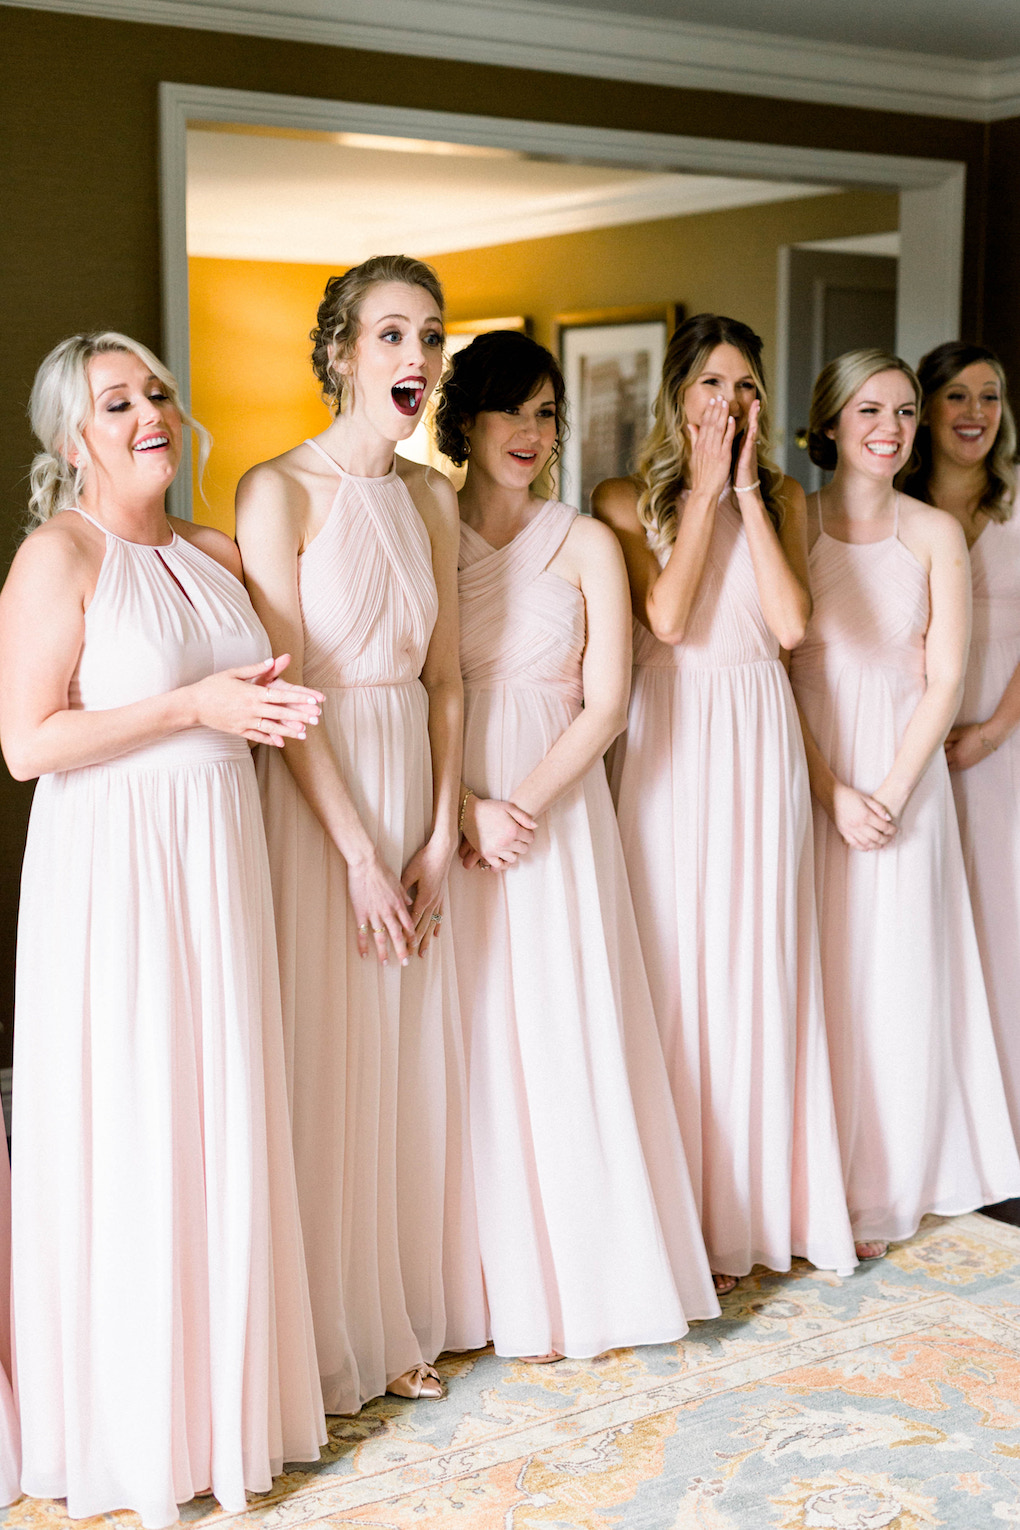 Pink bridesmaids dresses: Romantic Fairytale wedding at the Omni William Penn in Pittsburgh, PA planned by Exhale Events. Find more wedding inspiration at exhale-events.com!